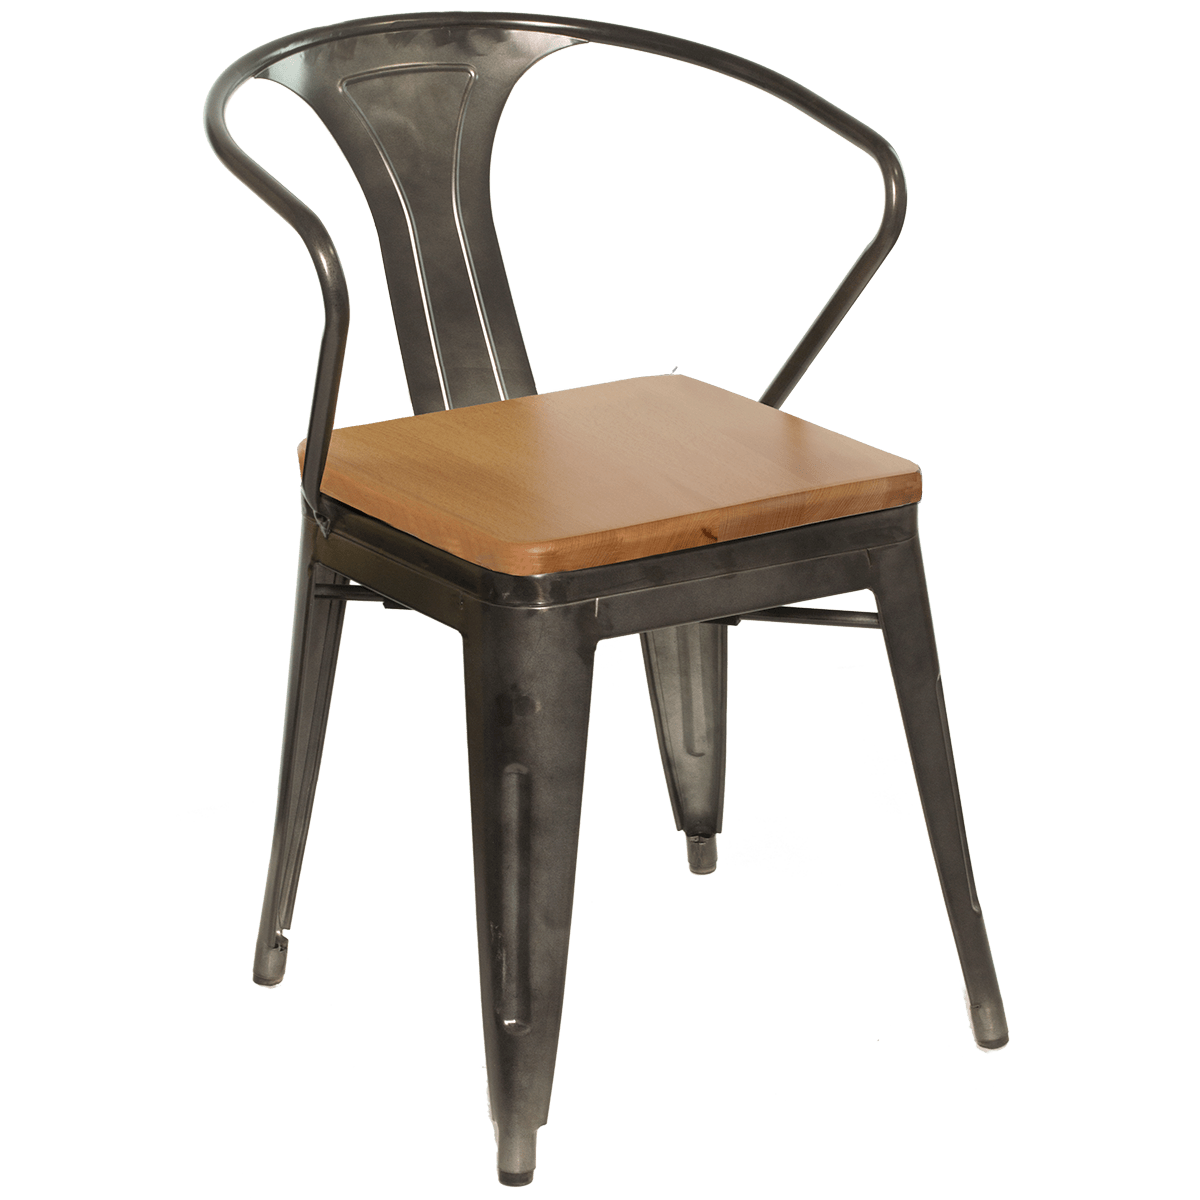 Metal Chair With Wood Seat Chairs Galvanized Gunmetal Steel Arm Chair